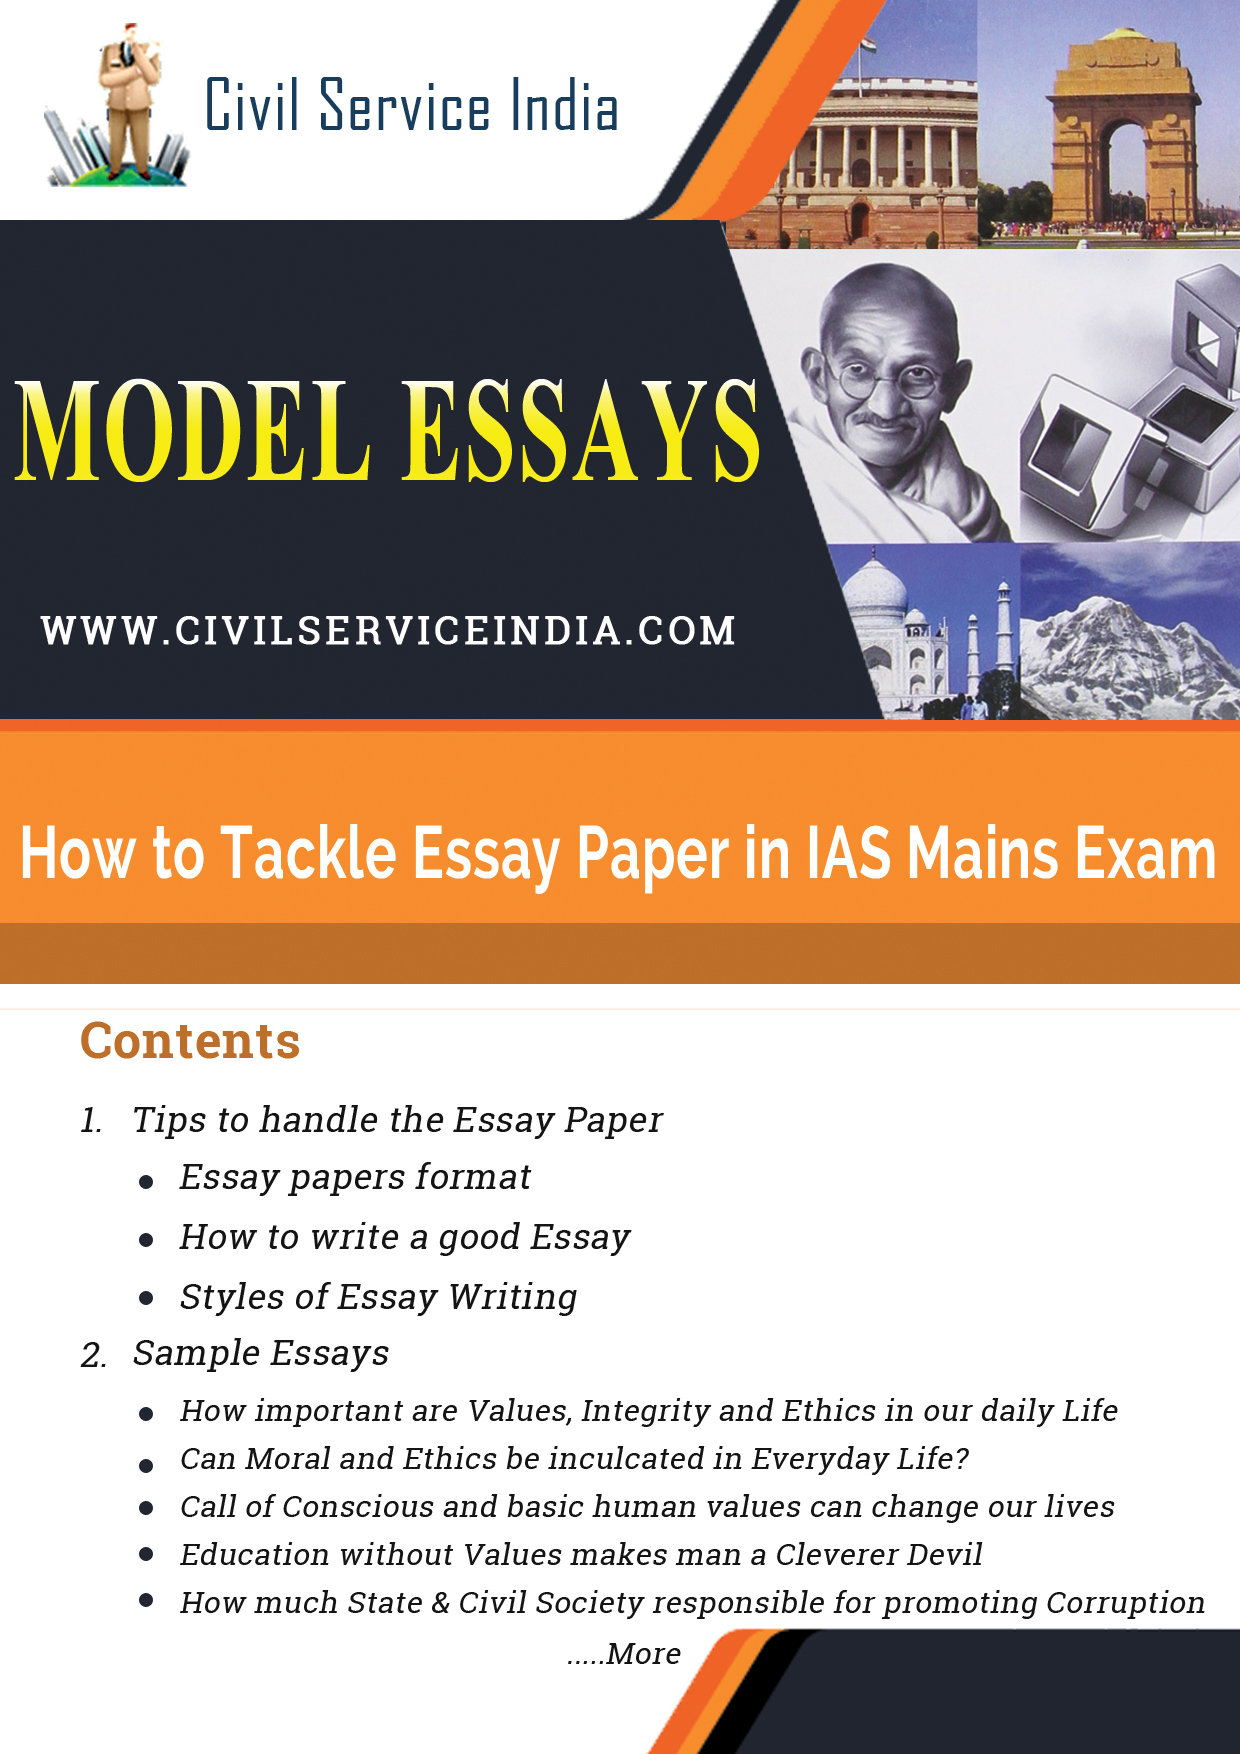 Civil Service exam E-book